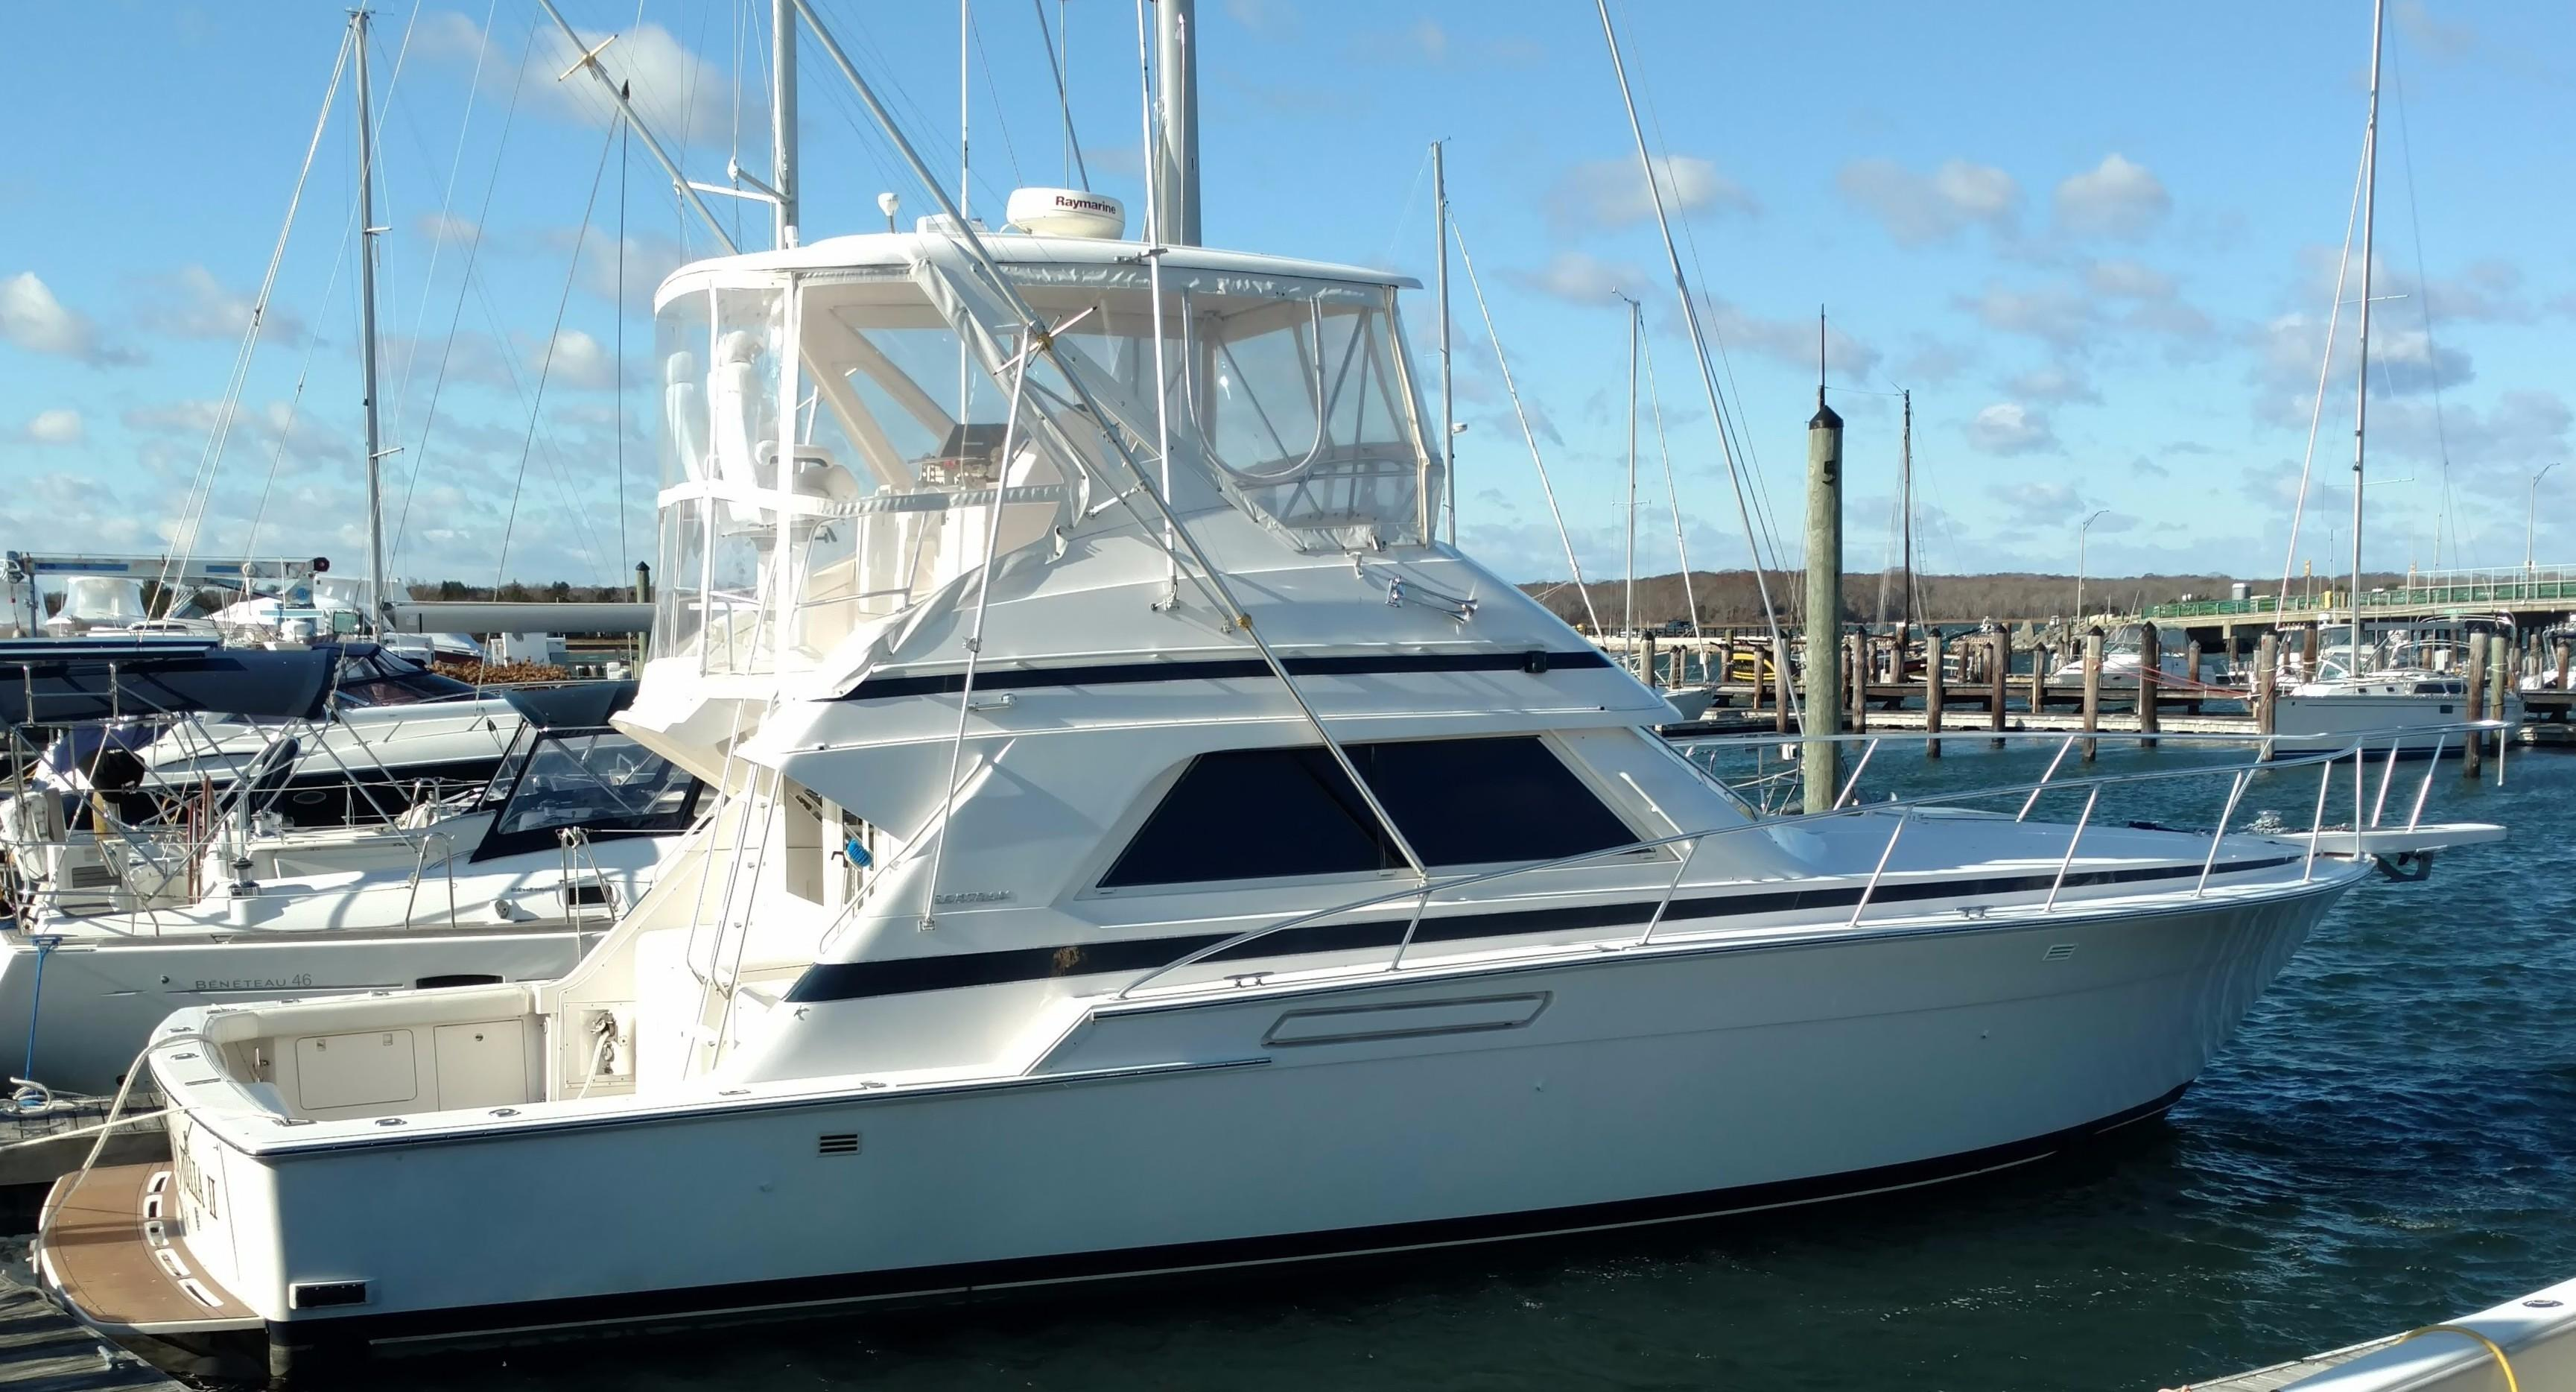 1995 Bertram Convertible Yacht For Sale In South Dartmouth MA